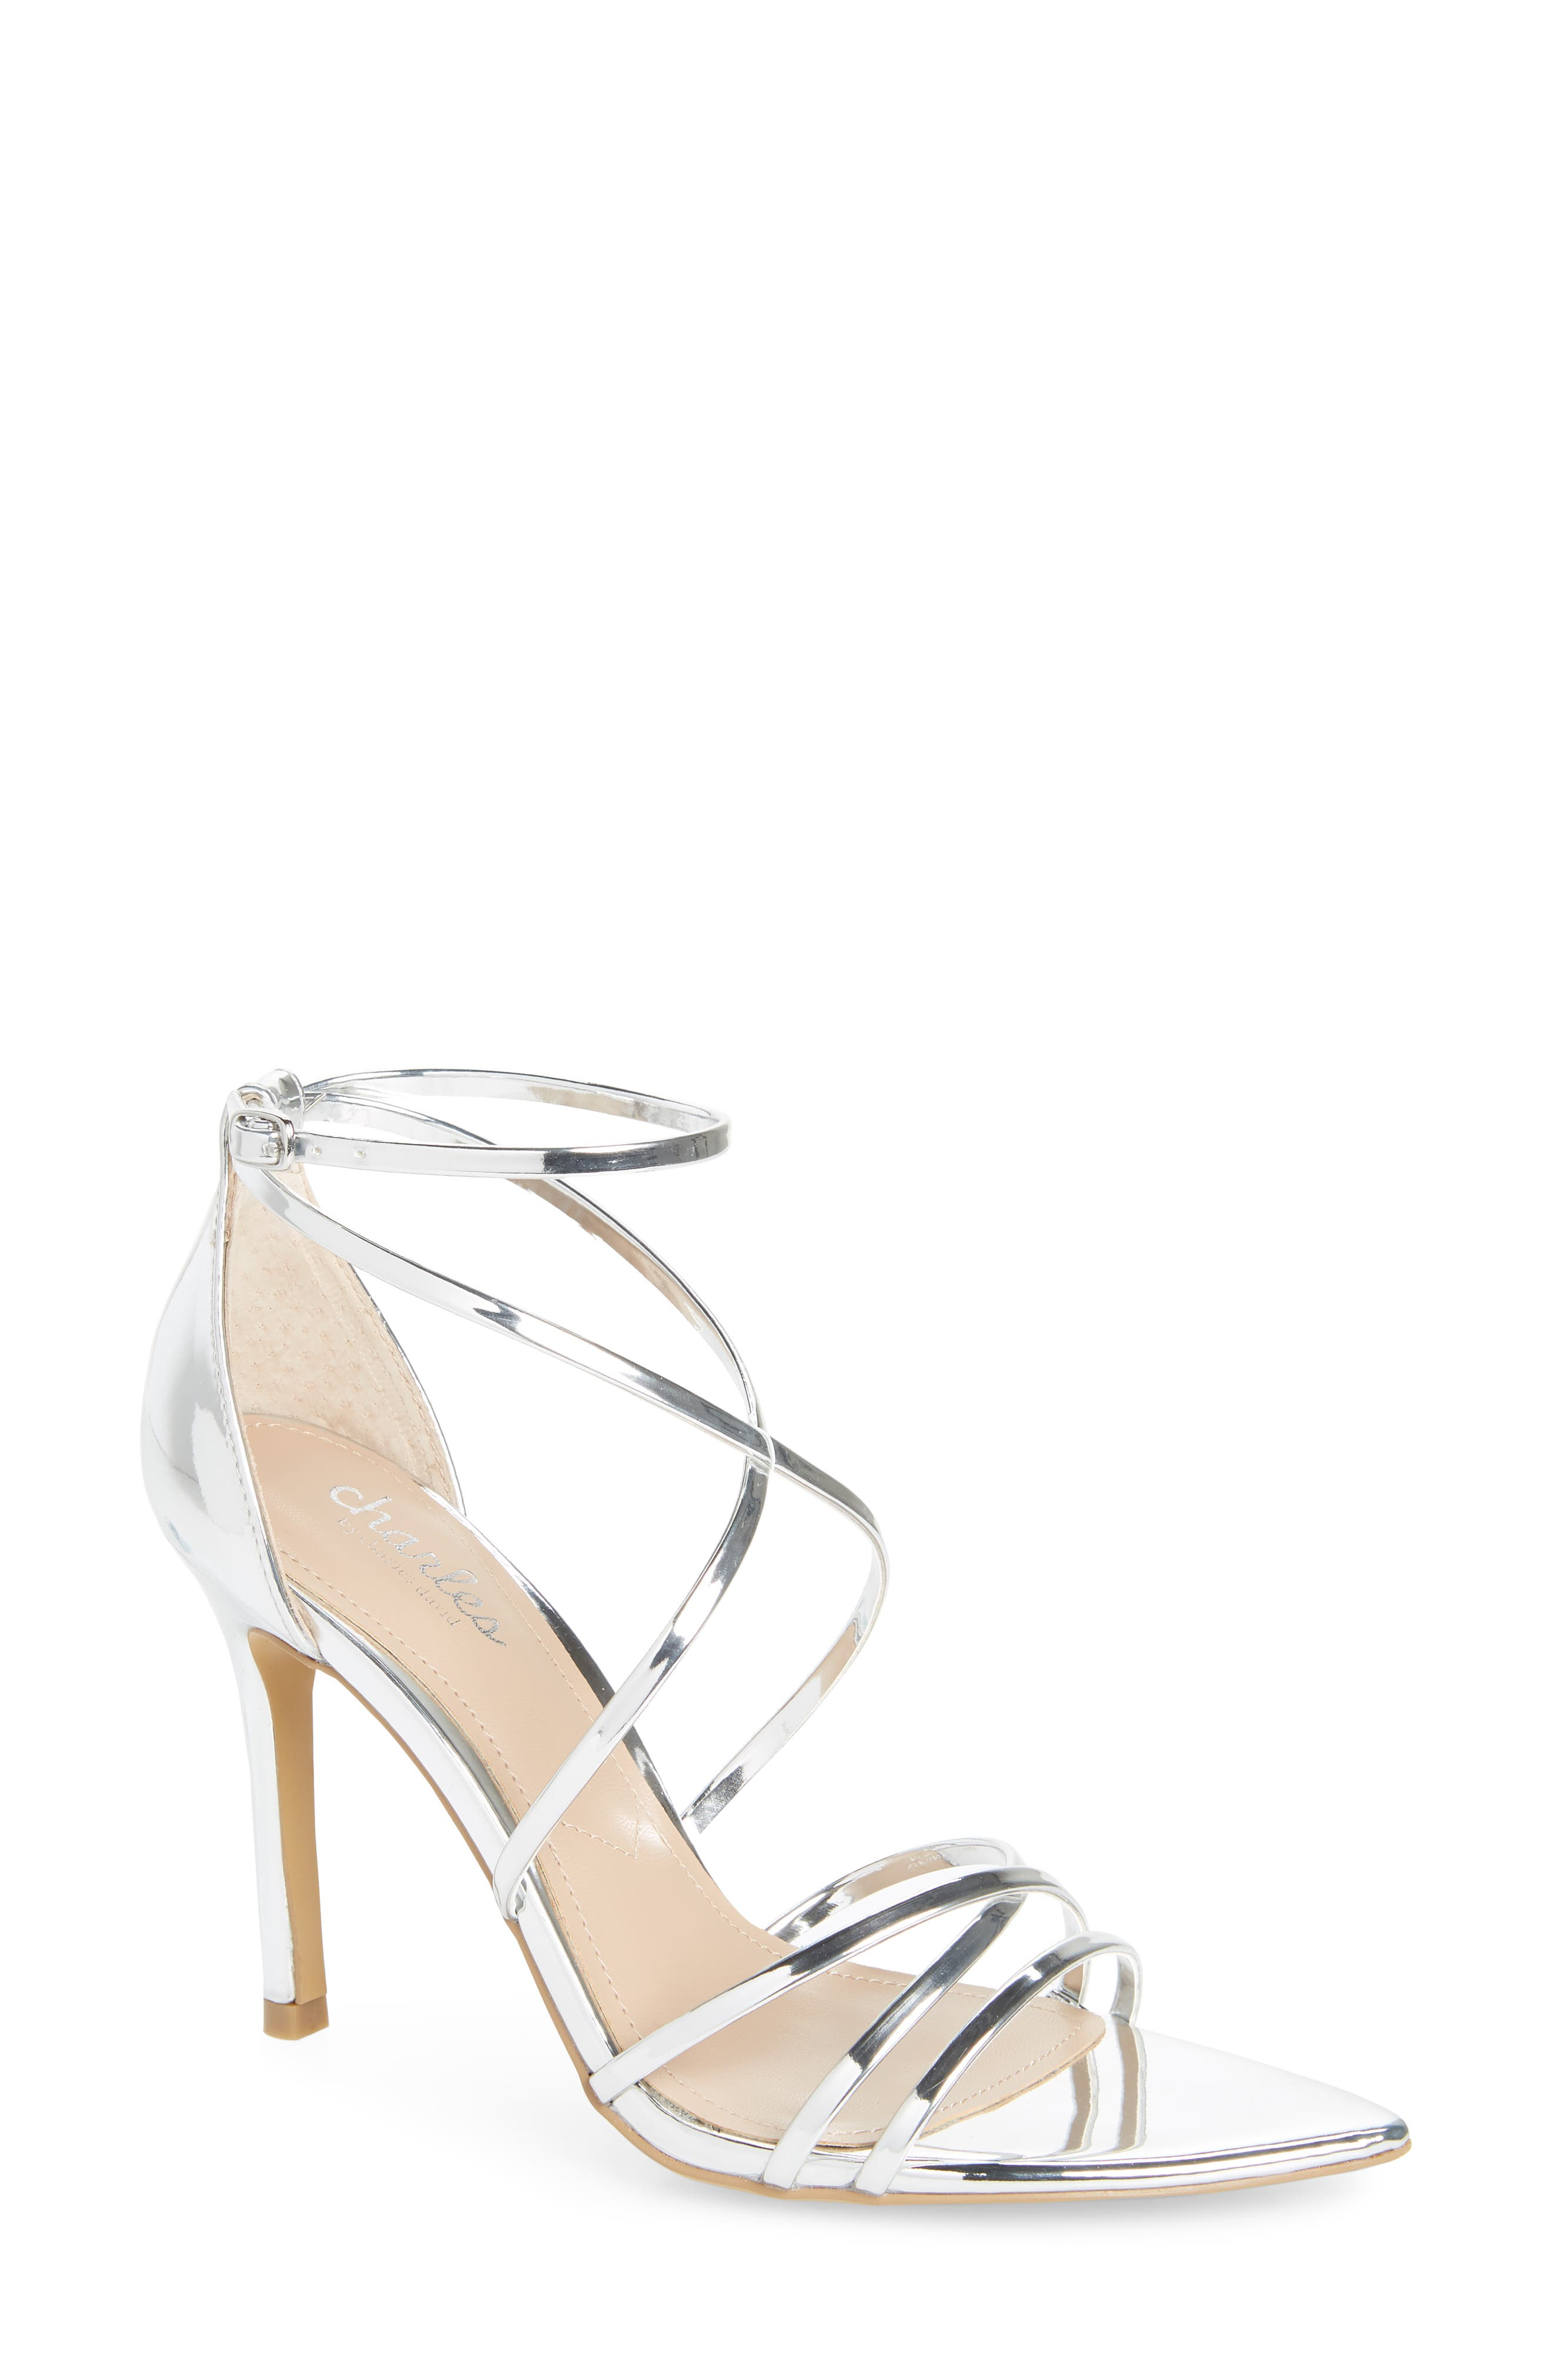 CHARLES BY CHARLES DAVID Trickster Strappy Sandal, Main, color, SILVER FAUX LEATHER